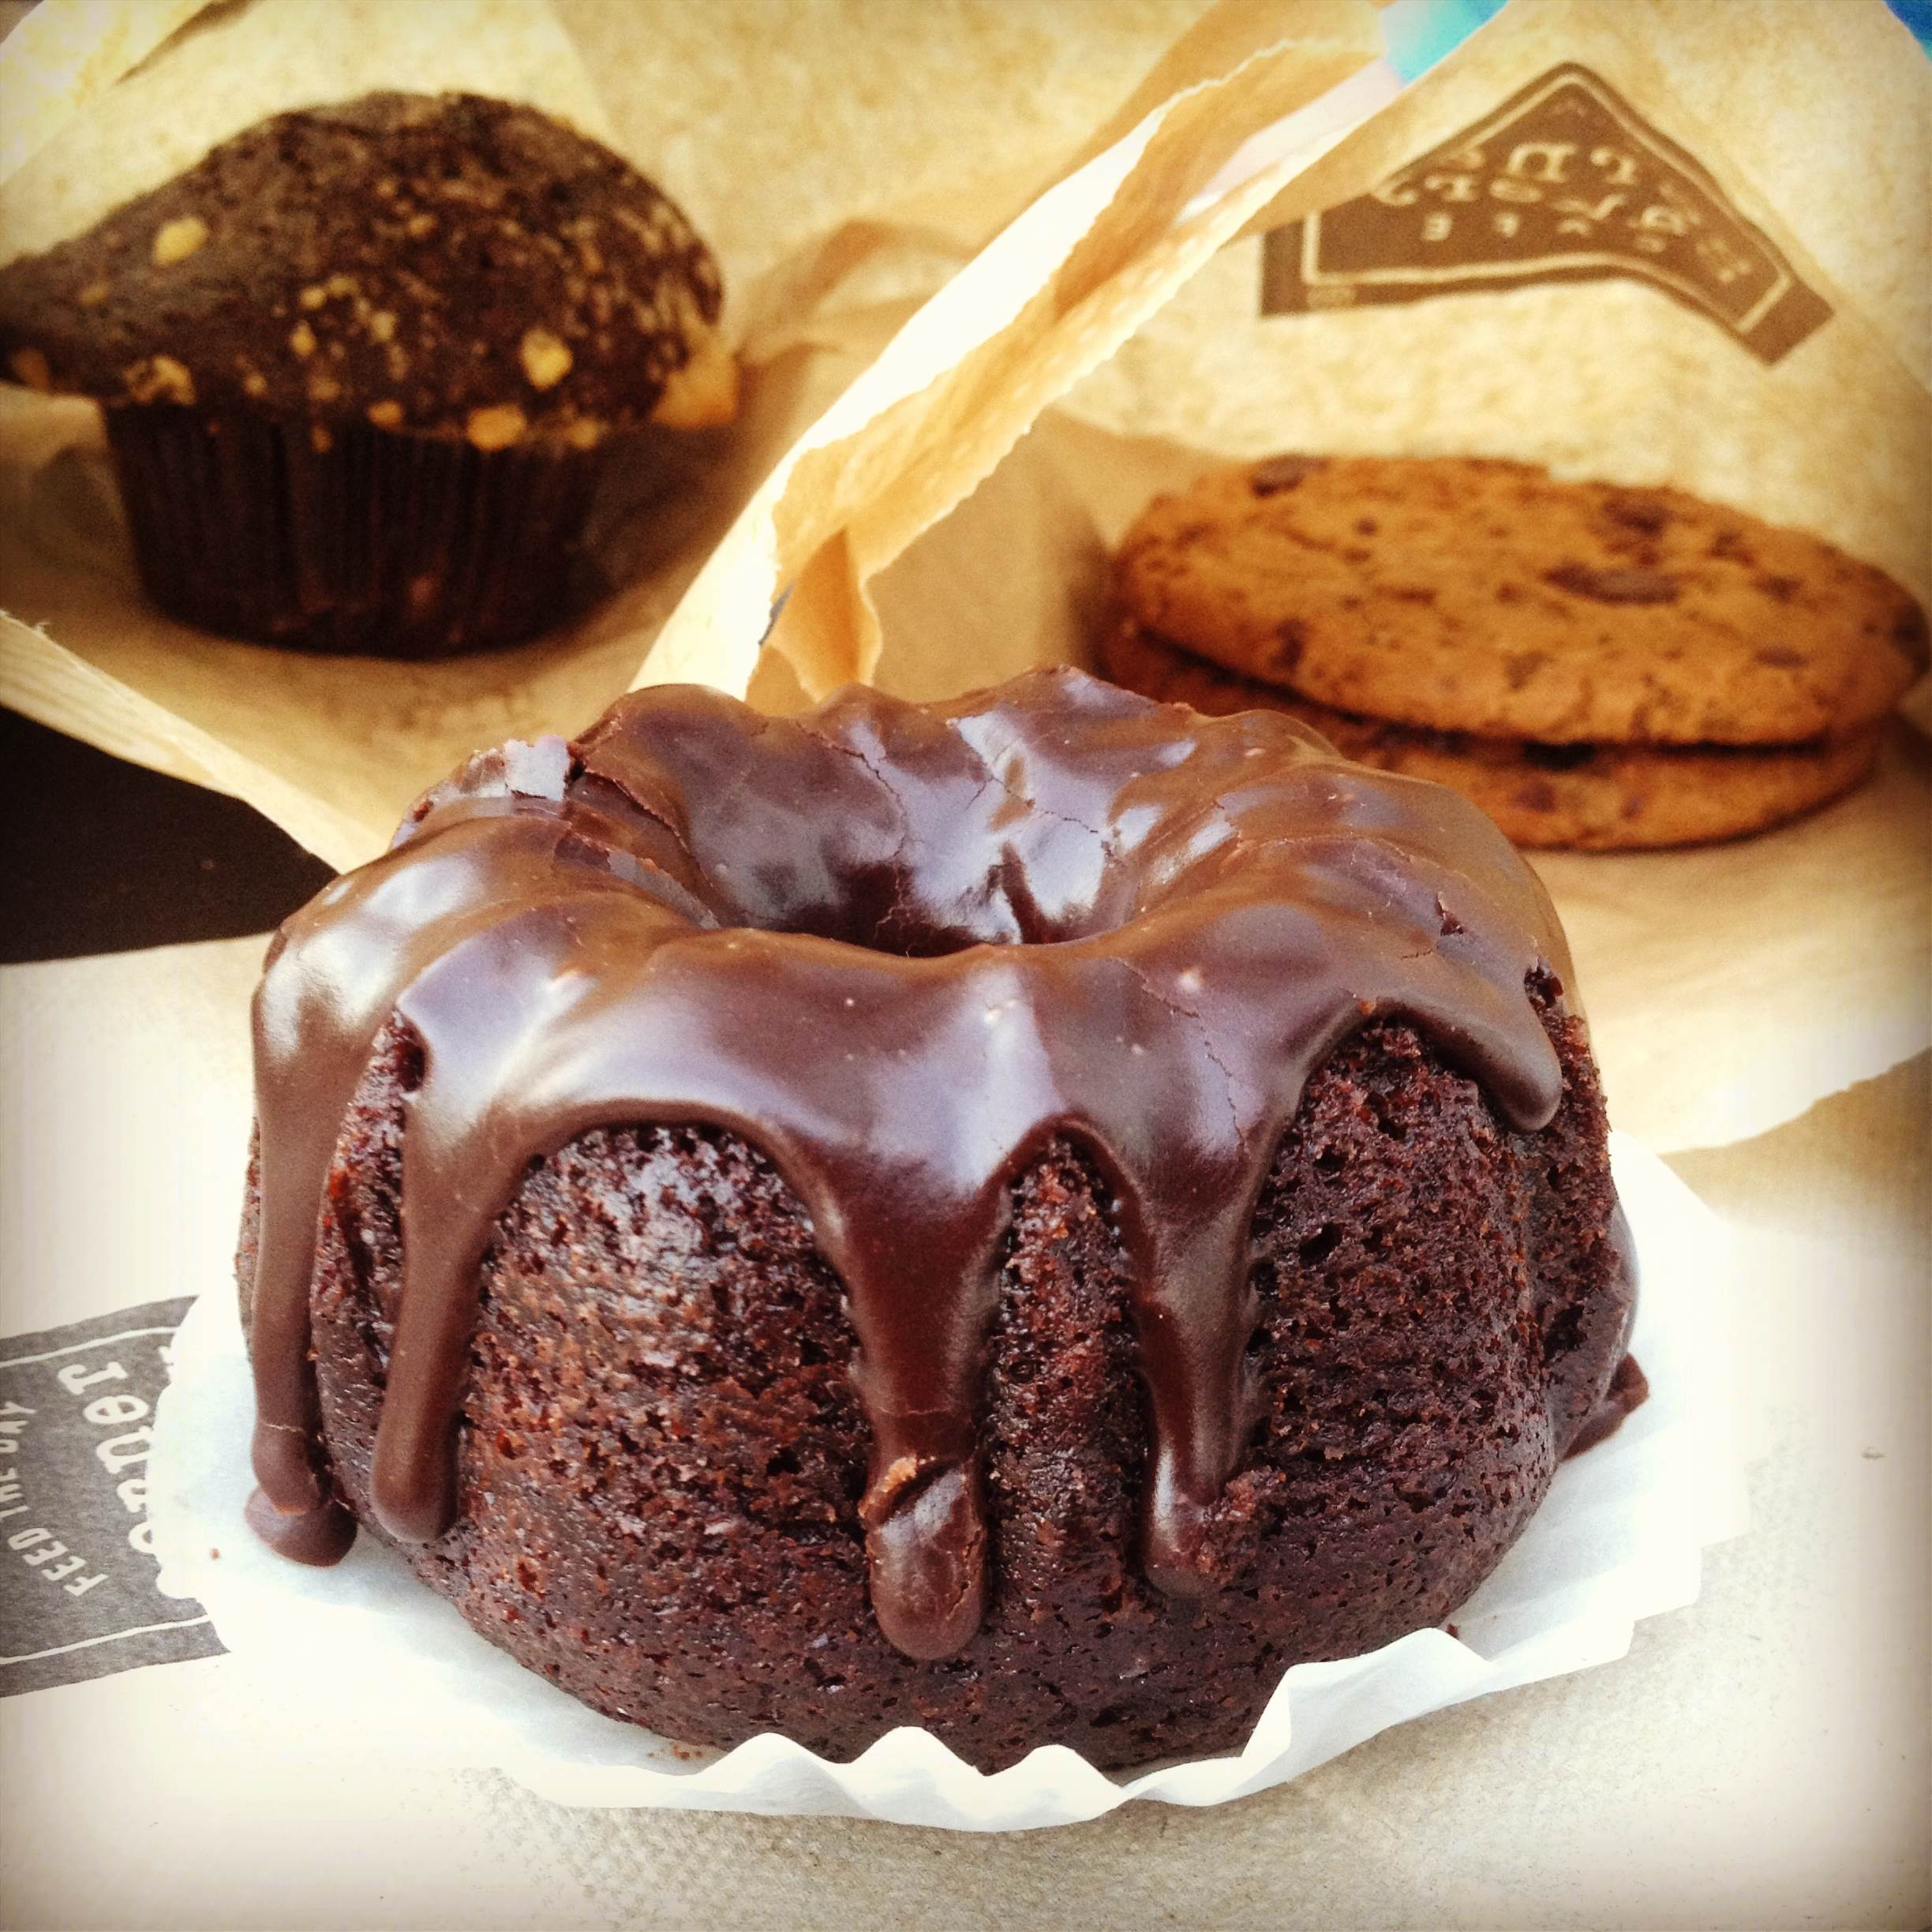 Chocolate Desserts from the Corner Bakery Café {foodsforthesoul.net}